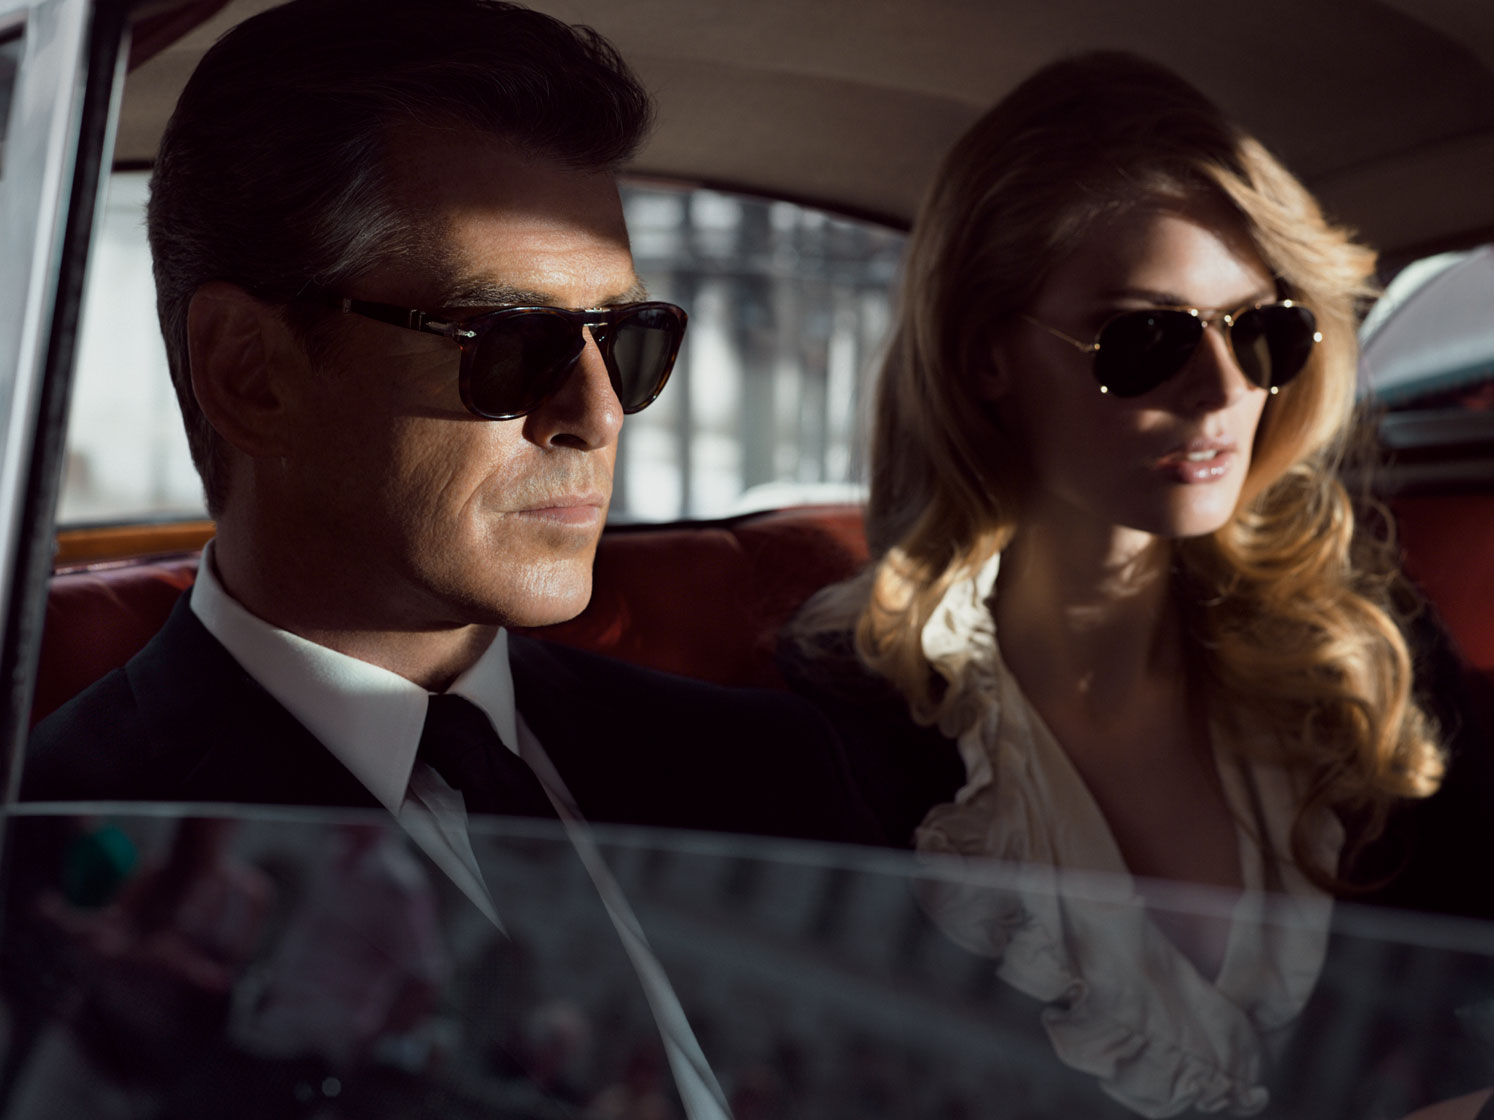 Pierce Brosnan in car with hot model for Aquascutum advert with Rosehip, Communications‭ ‬&‭ ‬Marketing